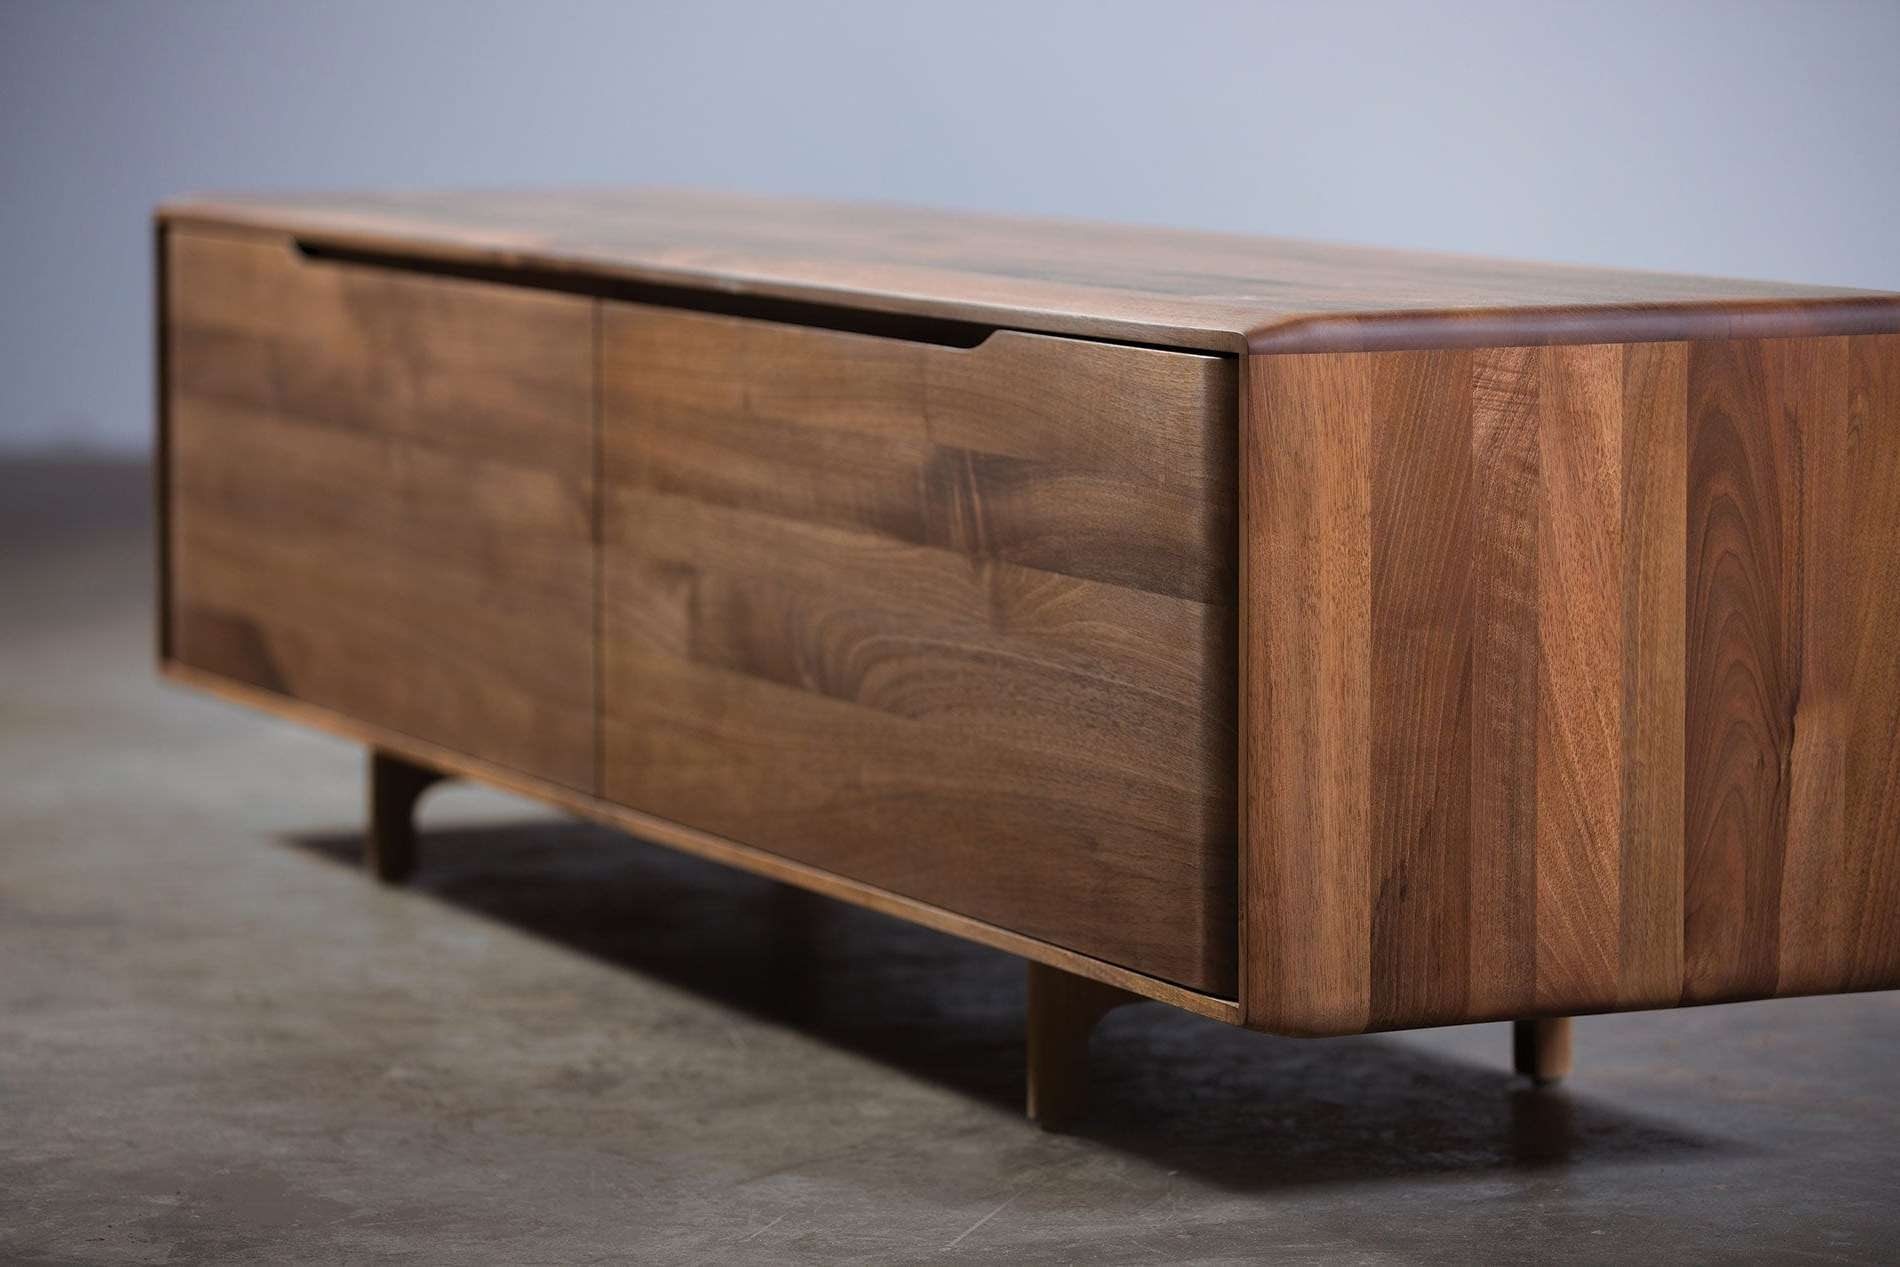 Contemporary Sideboard / Oak / Walnut / Solid Wood – Invito Inside Solid Wood Sideboards (View 5 of 20)